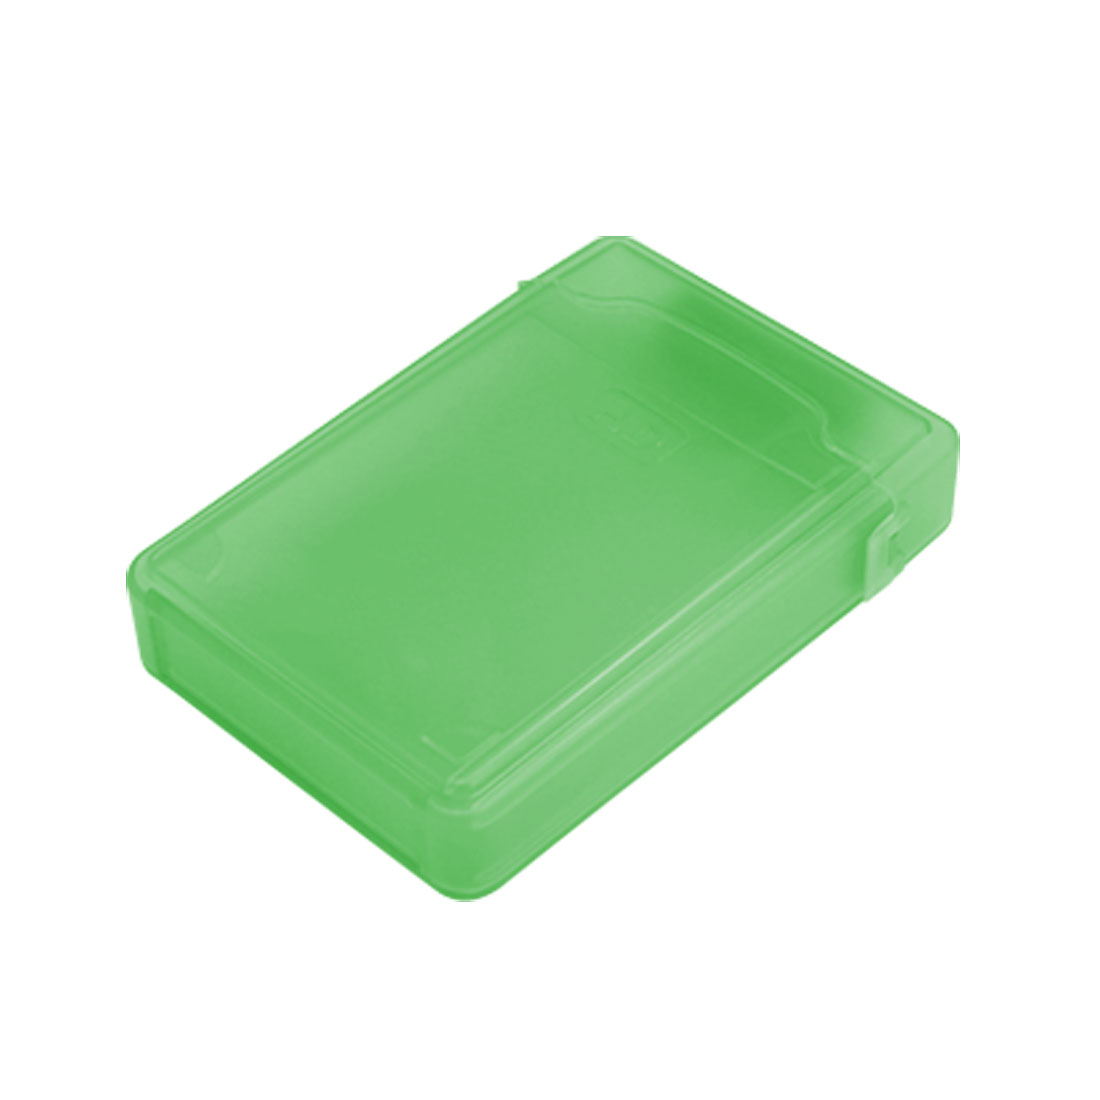 Green Storage Tank Box Case for 3.5 Inch Hard Drive HDD